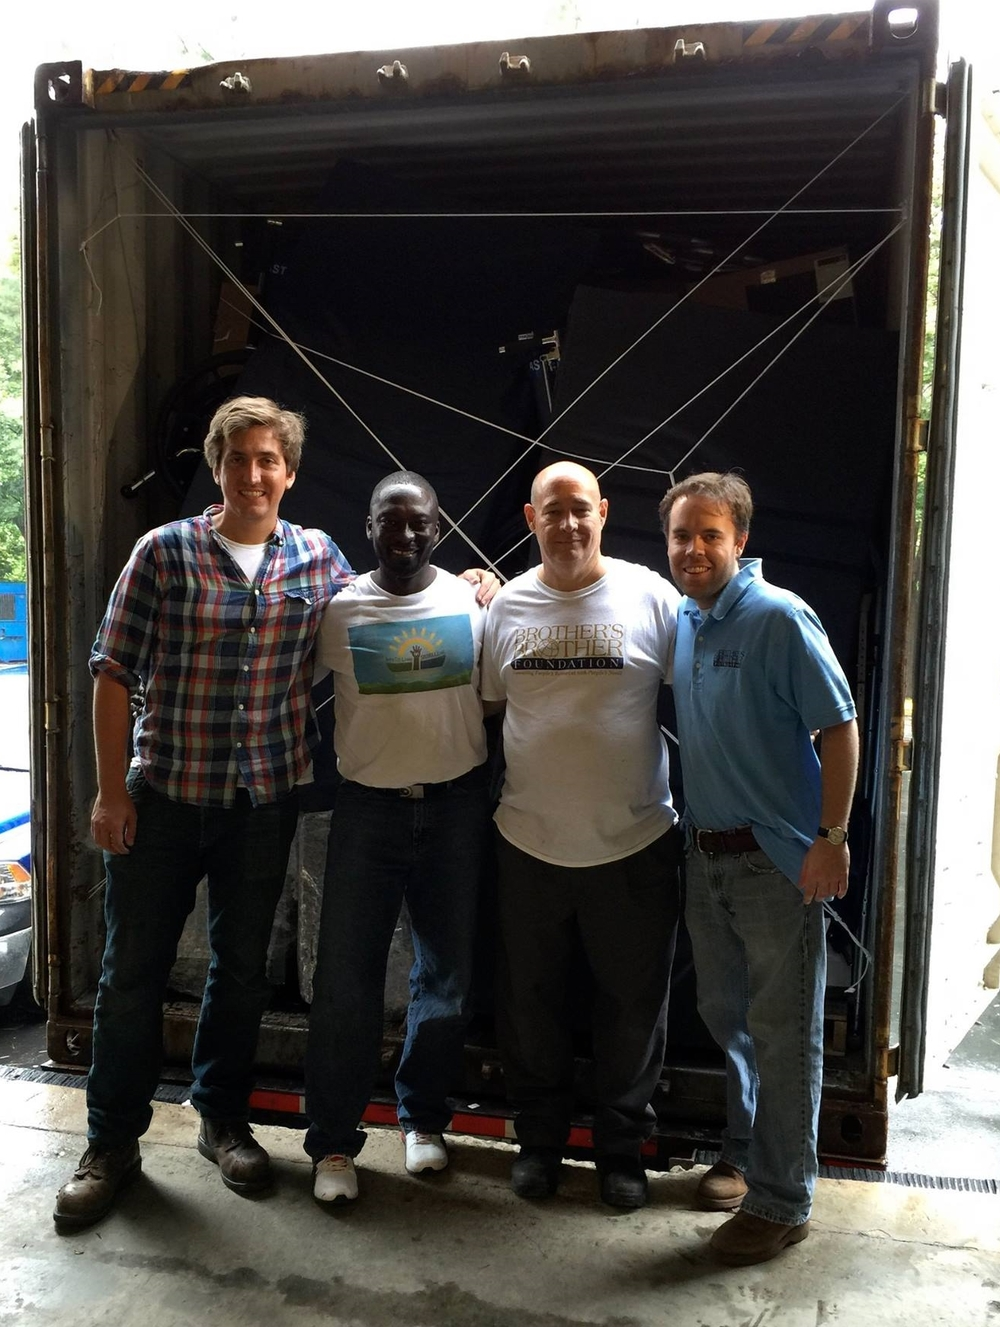 Thanks to the team at Brother's Brother Foundation for storing the equipment and helping us with loading and shipping.